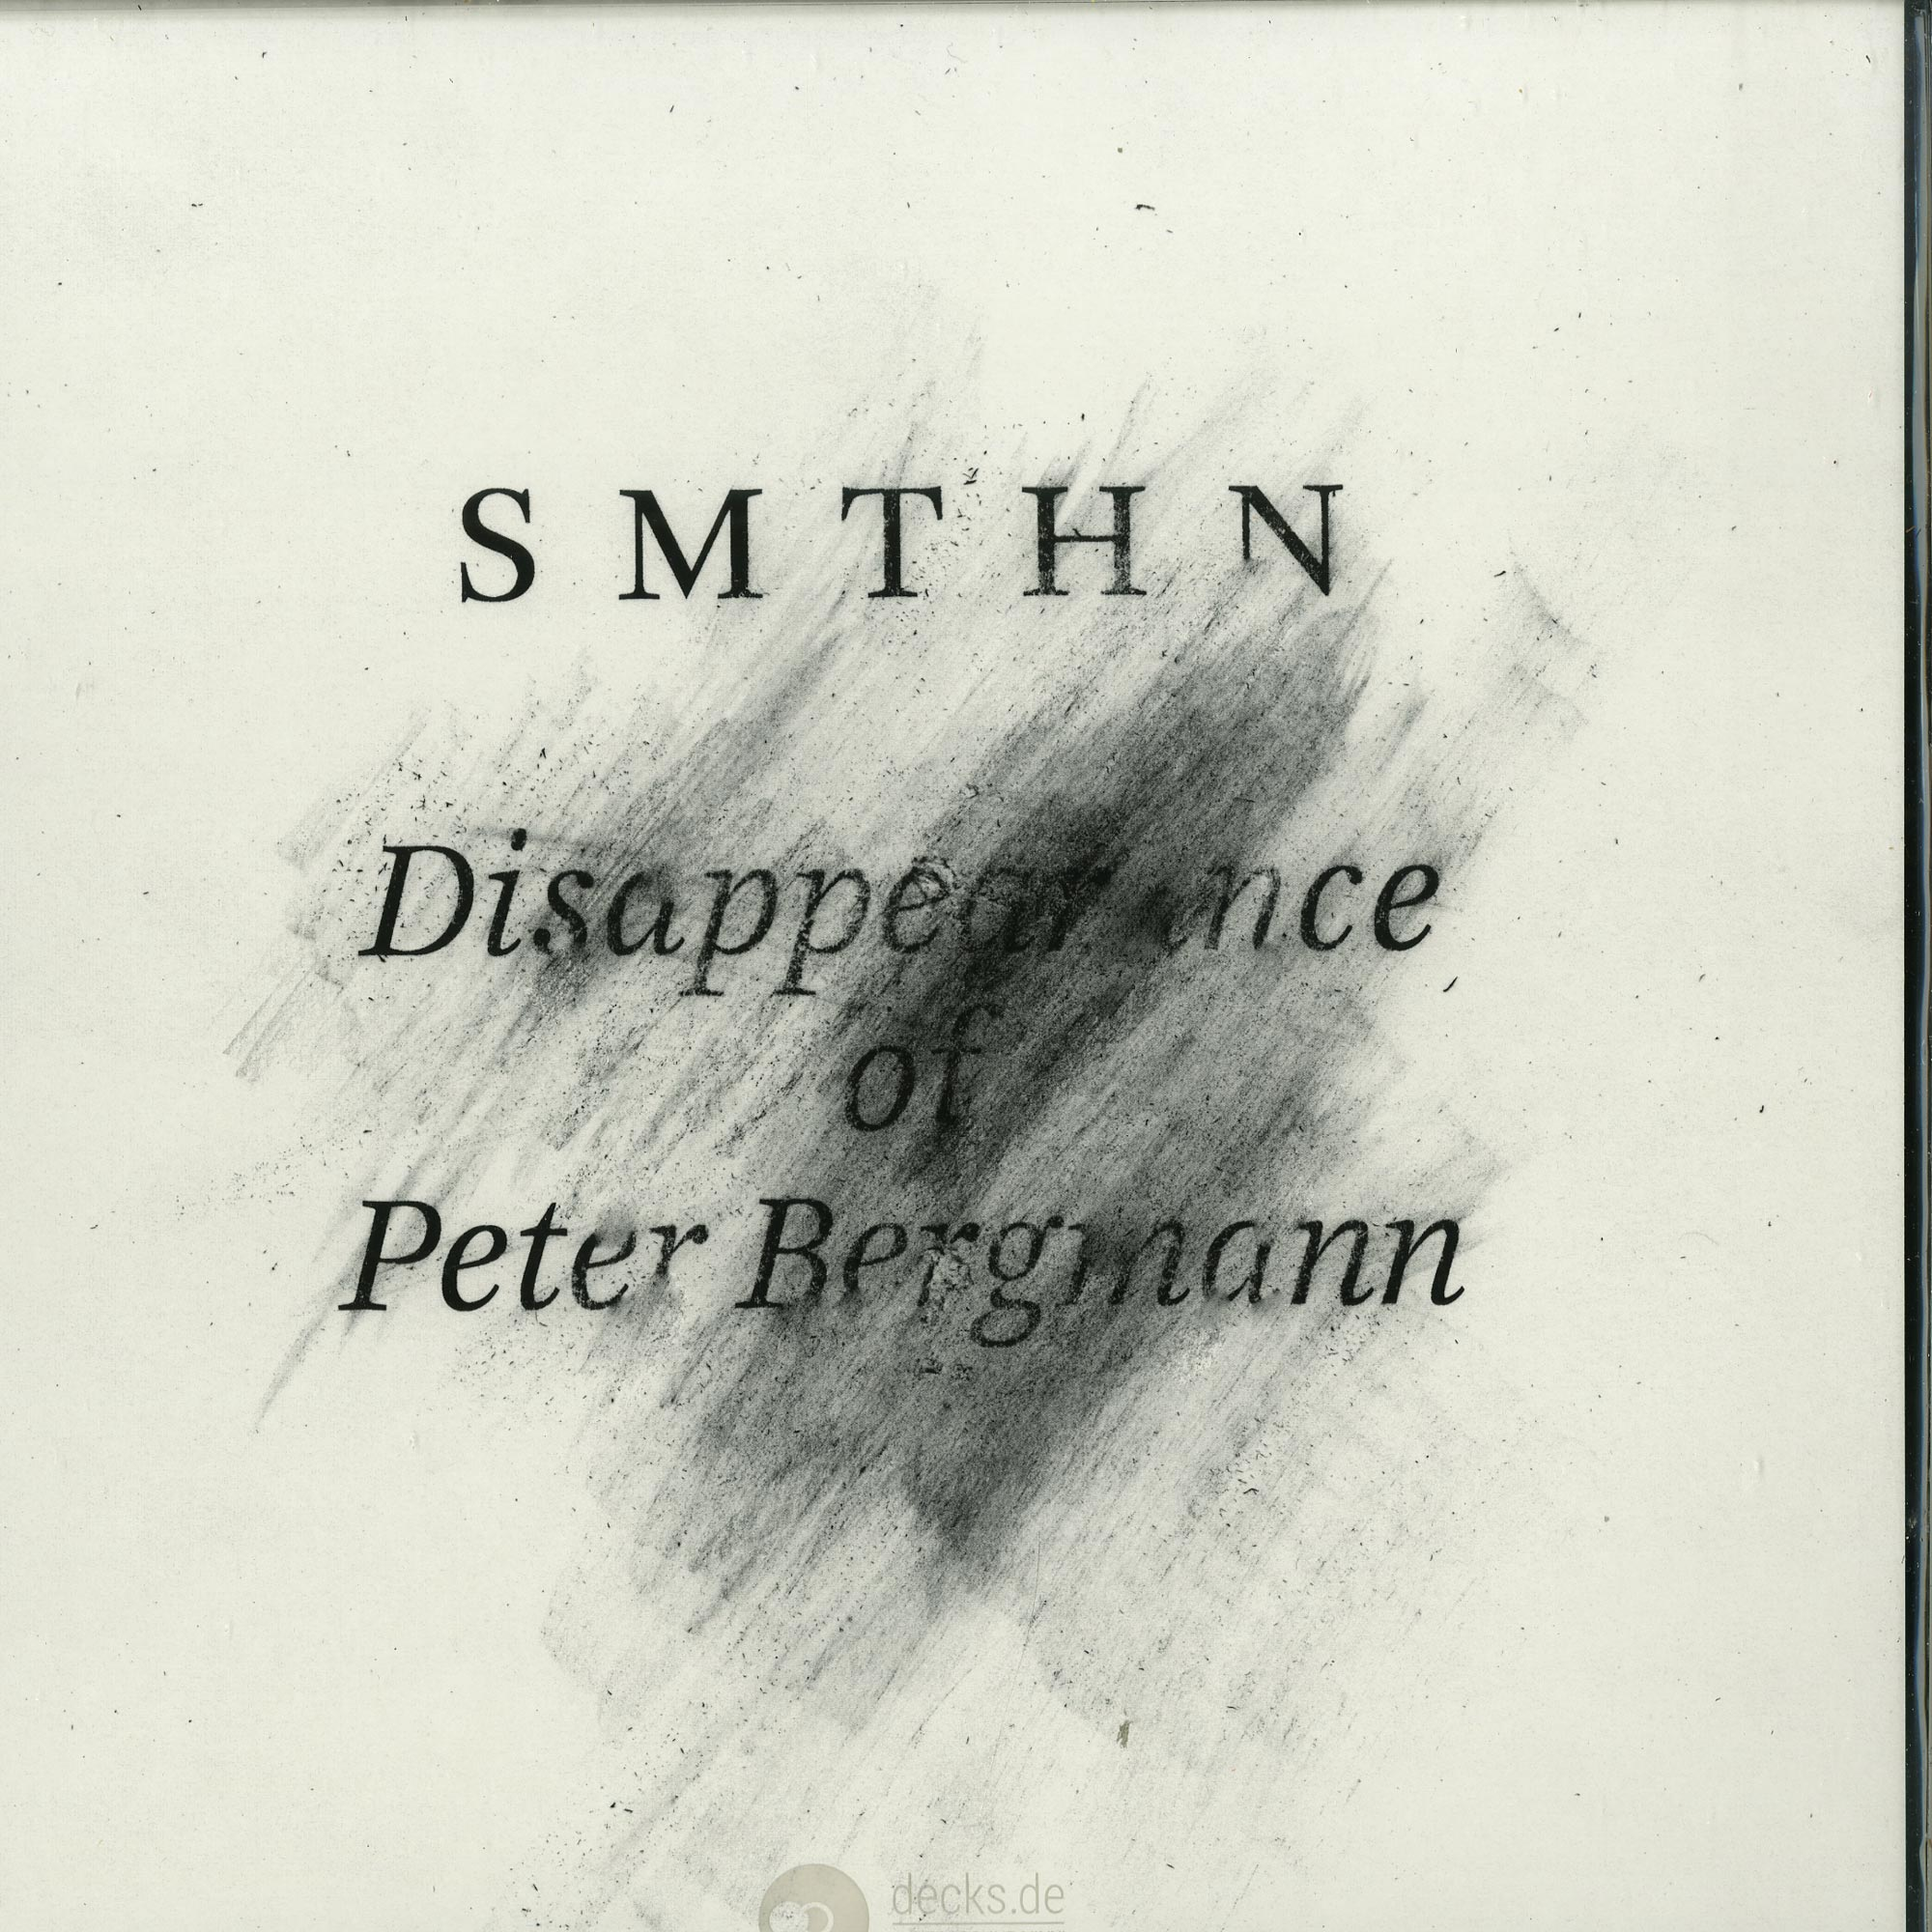 SMTHN - THE DISAPPEARANCE OF PETER BERGMANN